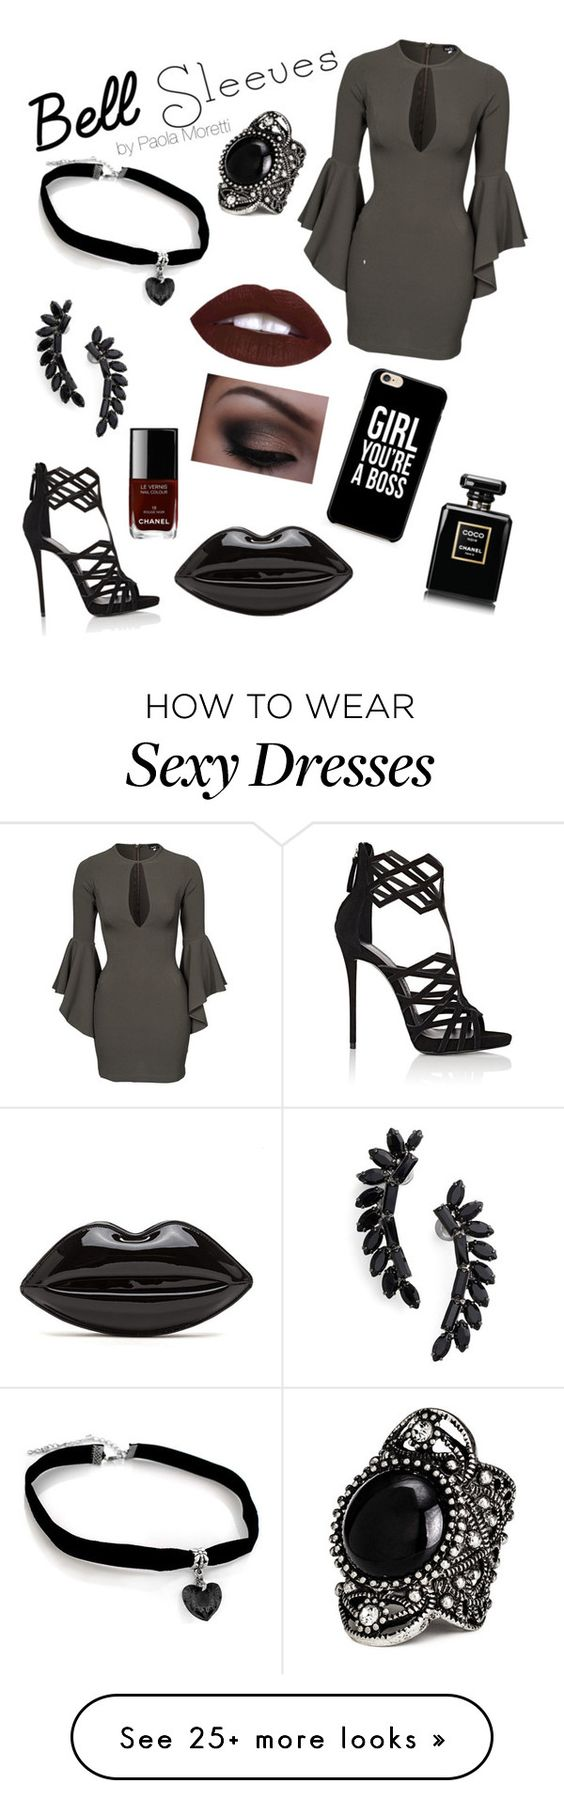 """Bell sleeves's look!"" by paola-moretti on Polyvore featuring John Zack, Giuseppe Zanotti, Cristabelle and Chanel"